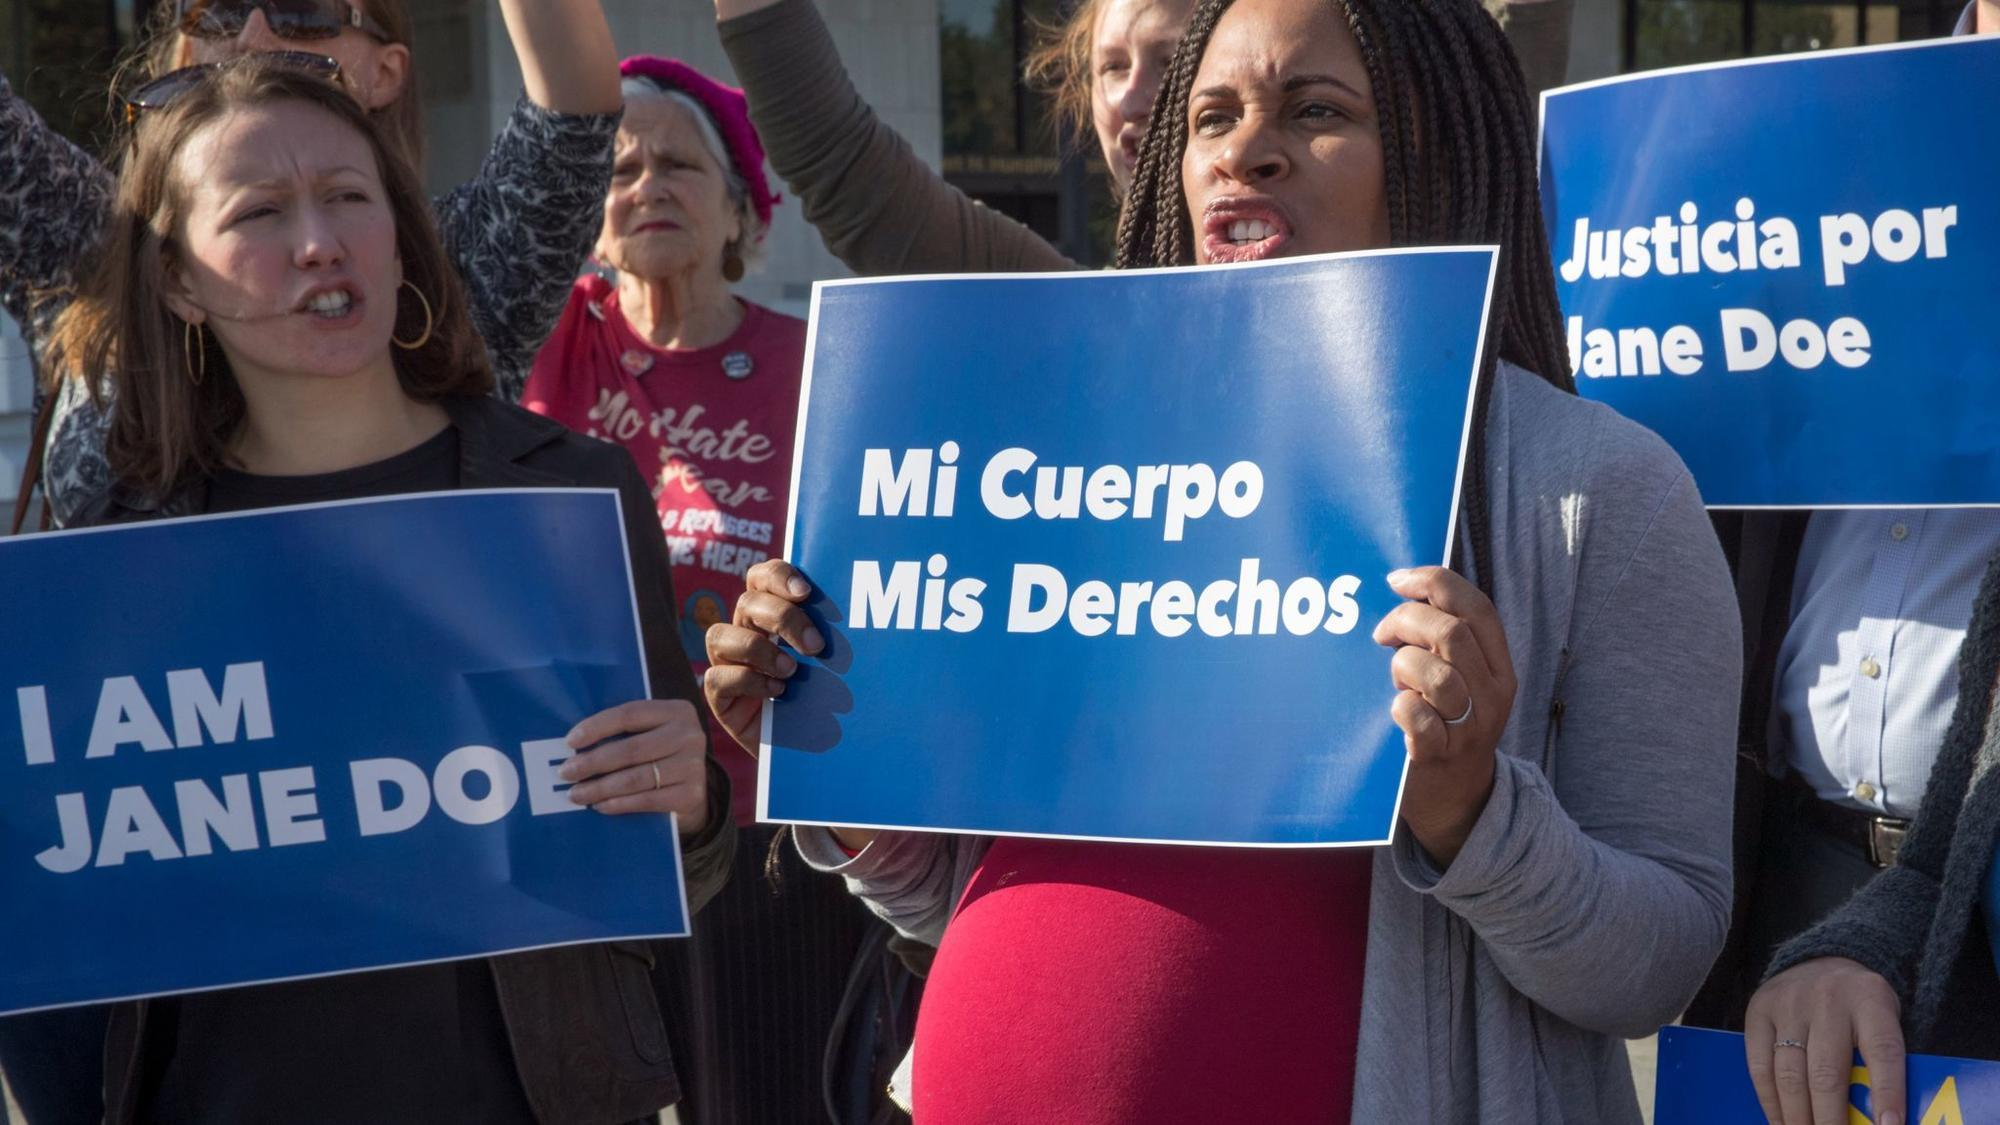 DC Appeals Court Rules For Teen Seeking Abortion While In US Illegally